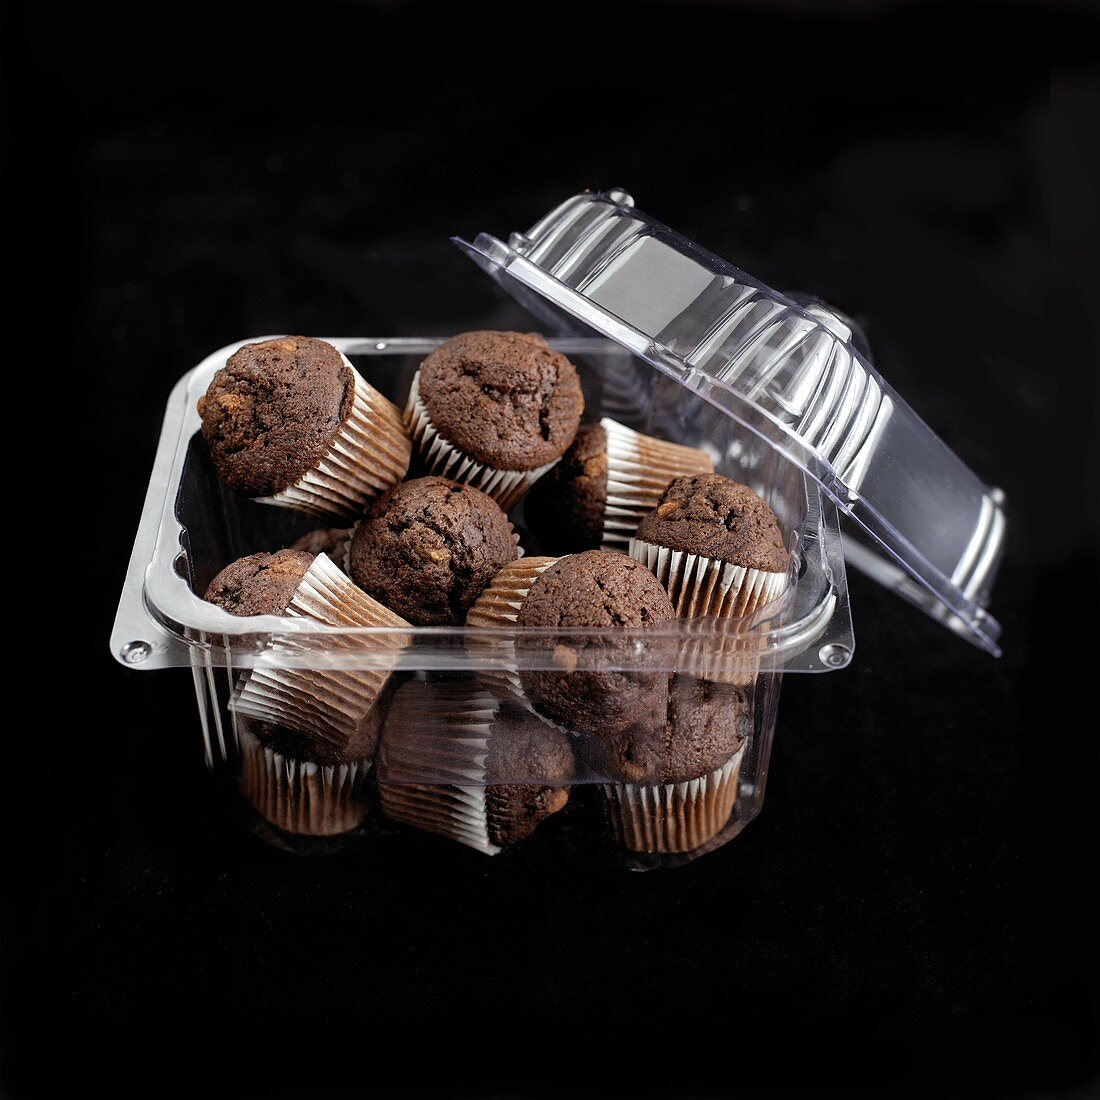 Mini chocolate muffins in a plastic container